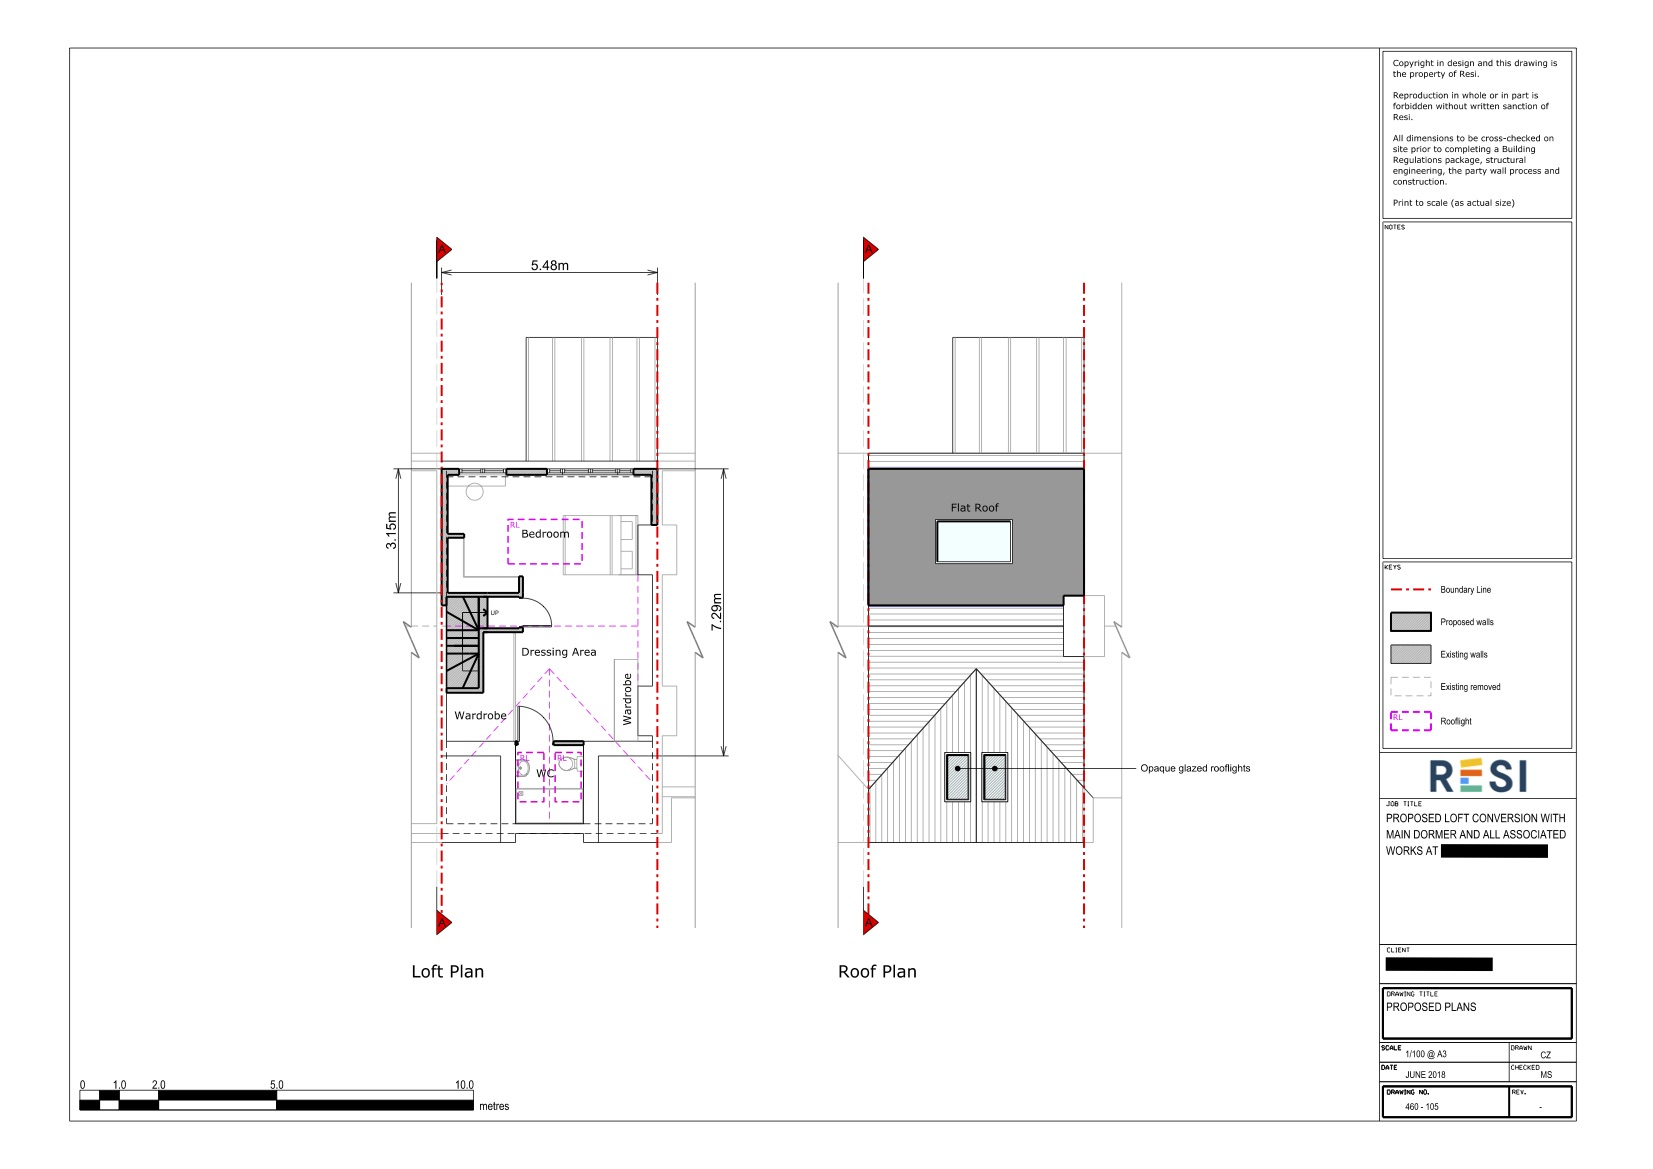 Plans and elevations pd   loft and roof plan